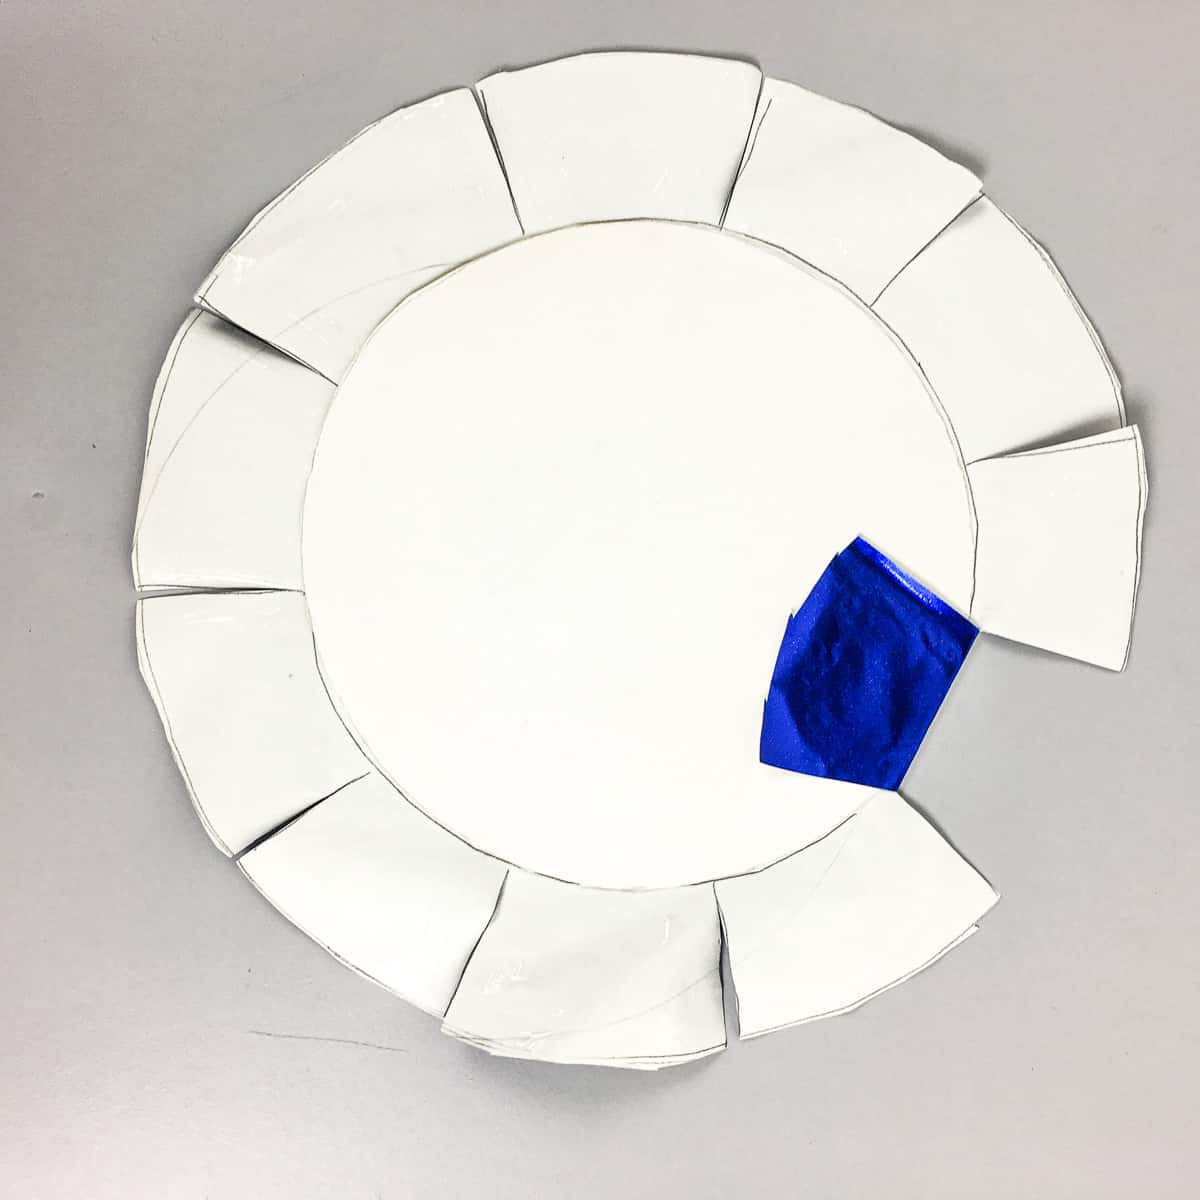 Wrapping a cake board with blue paper